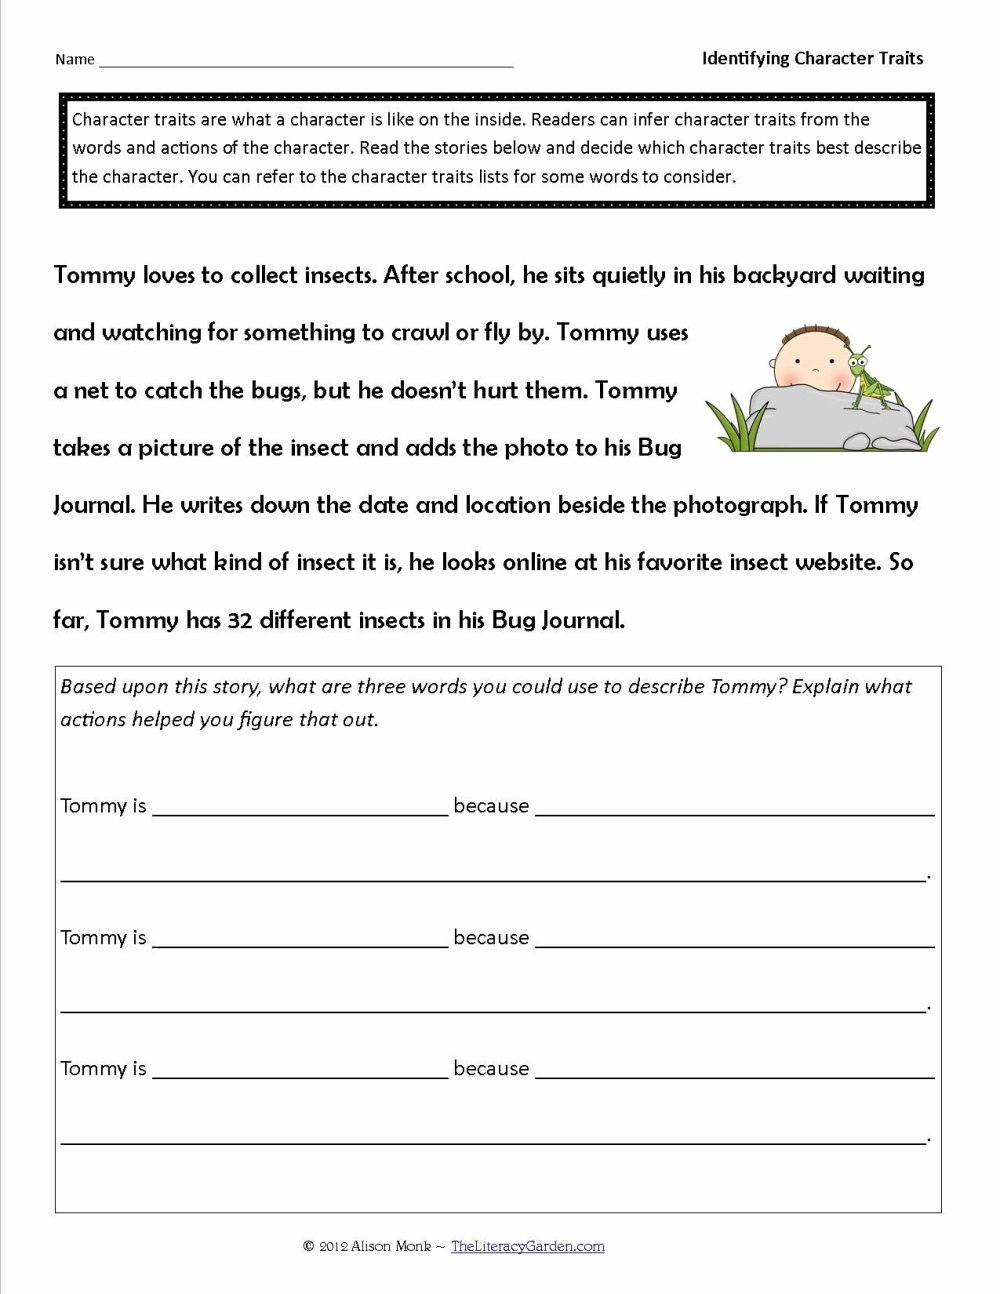 medium resolution of 12 Character Traits Worksheet 3rd Grade   Worksheets Ideas Printable